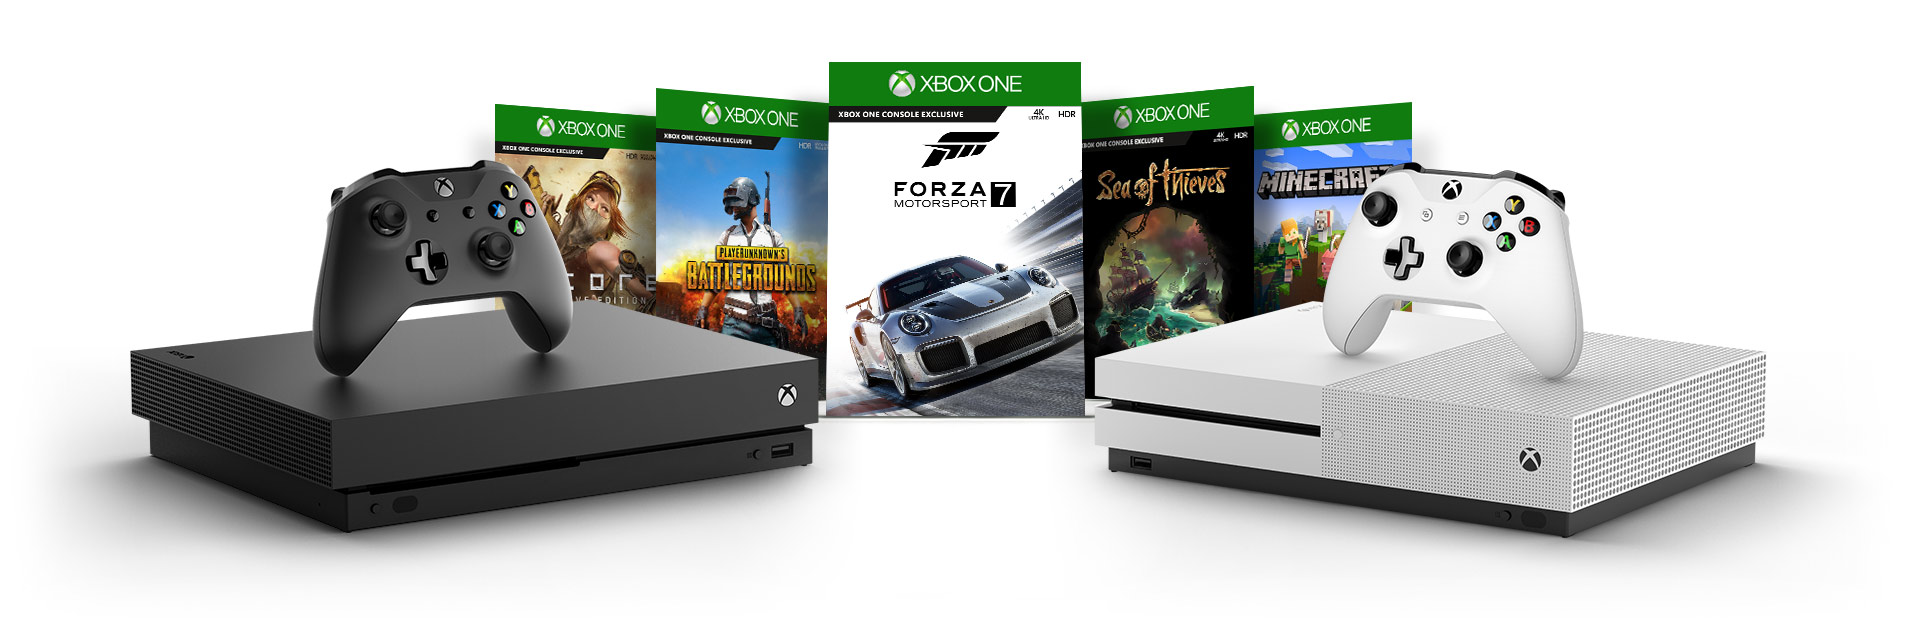 Imágenes de la caja de State of Decay 2 Player Unknown's Battlegrounds Forza 7 Sea of Thieves and Cuphead detrás de una consola Xbox One X y Xbox One S